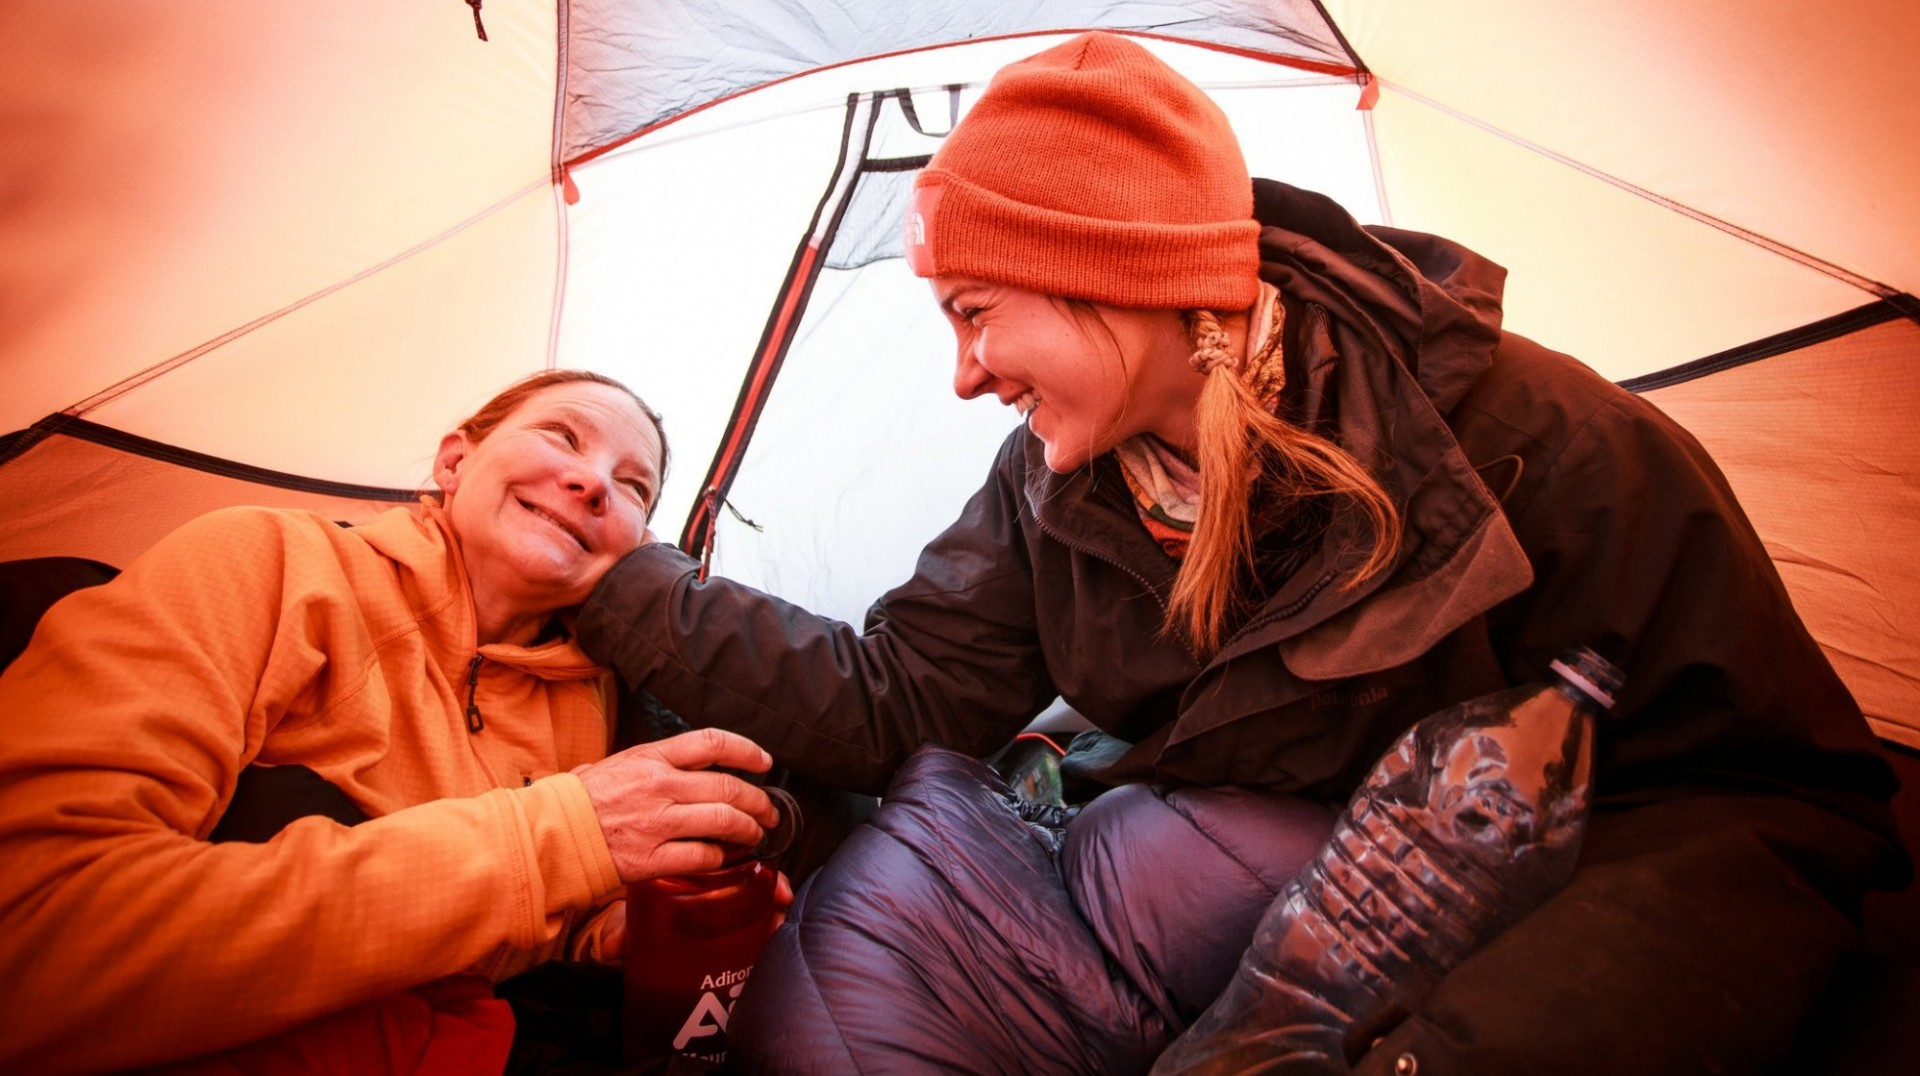 Isabella, left, and Bella shared a moment in their tent at Camp 1 along their climb up Aconcagua. Photo by Max Whittaker for The New York Times